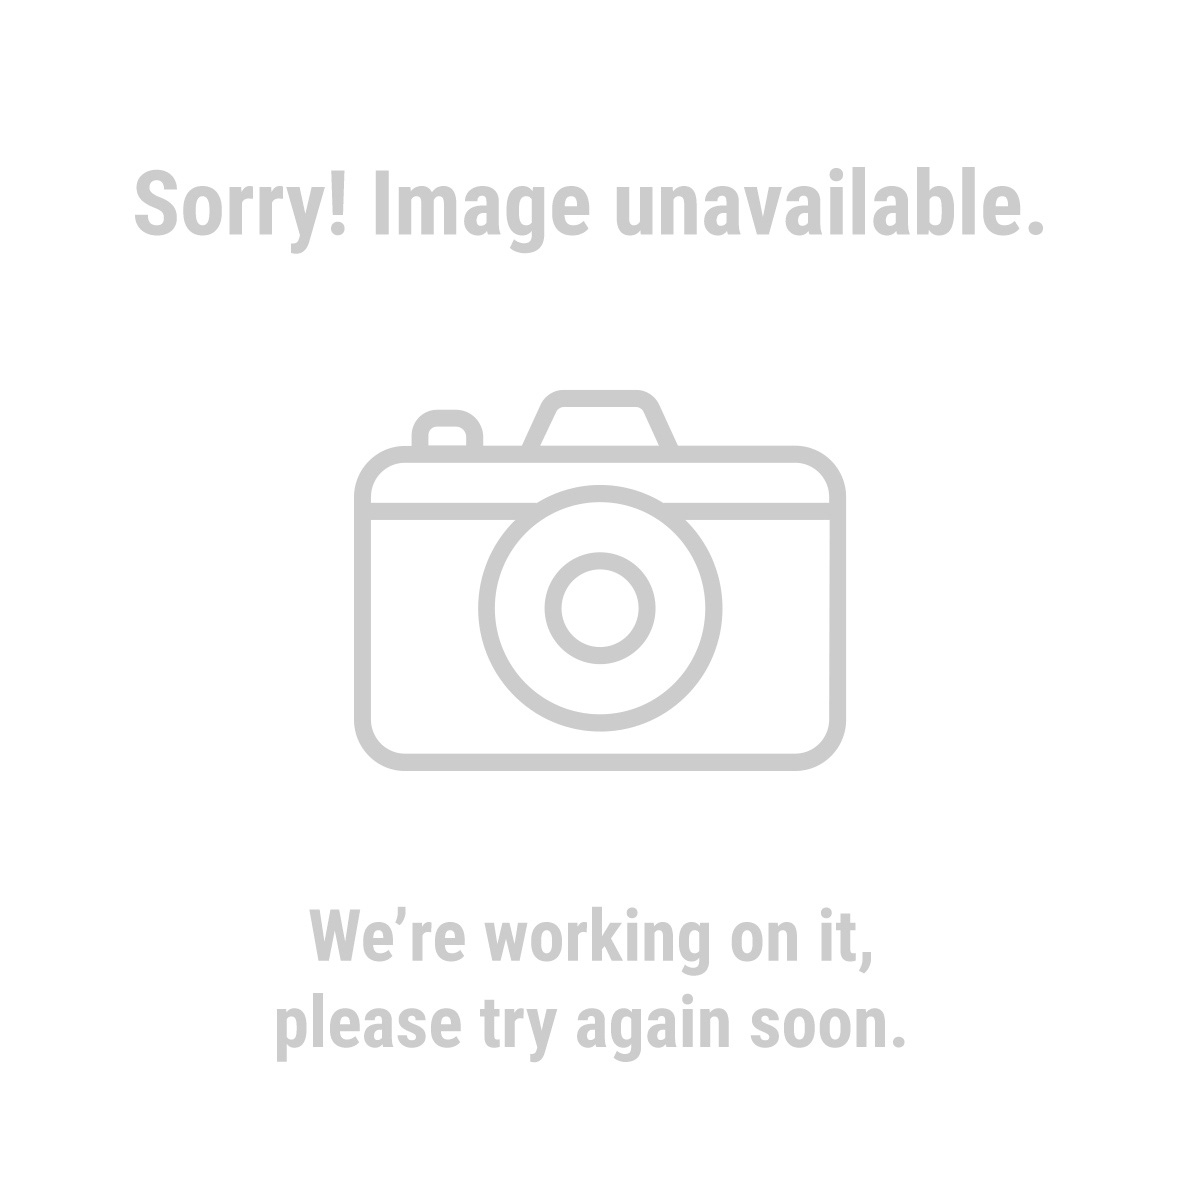 Admiral® 62740 7-1/4 in. 4T PCD Fiber Cement Circular Saw Blade